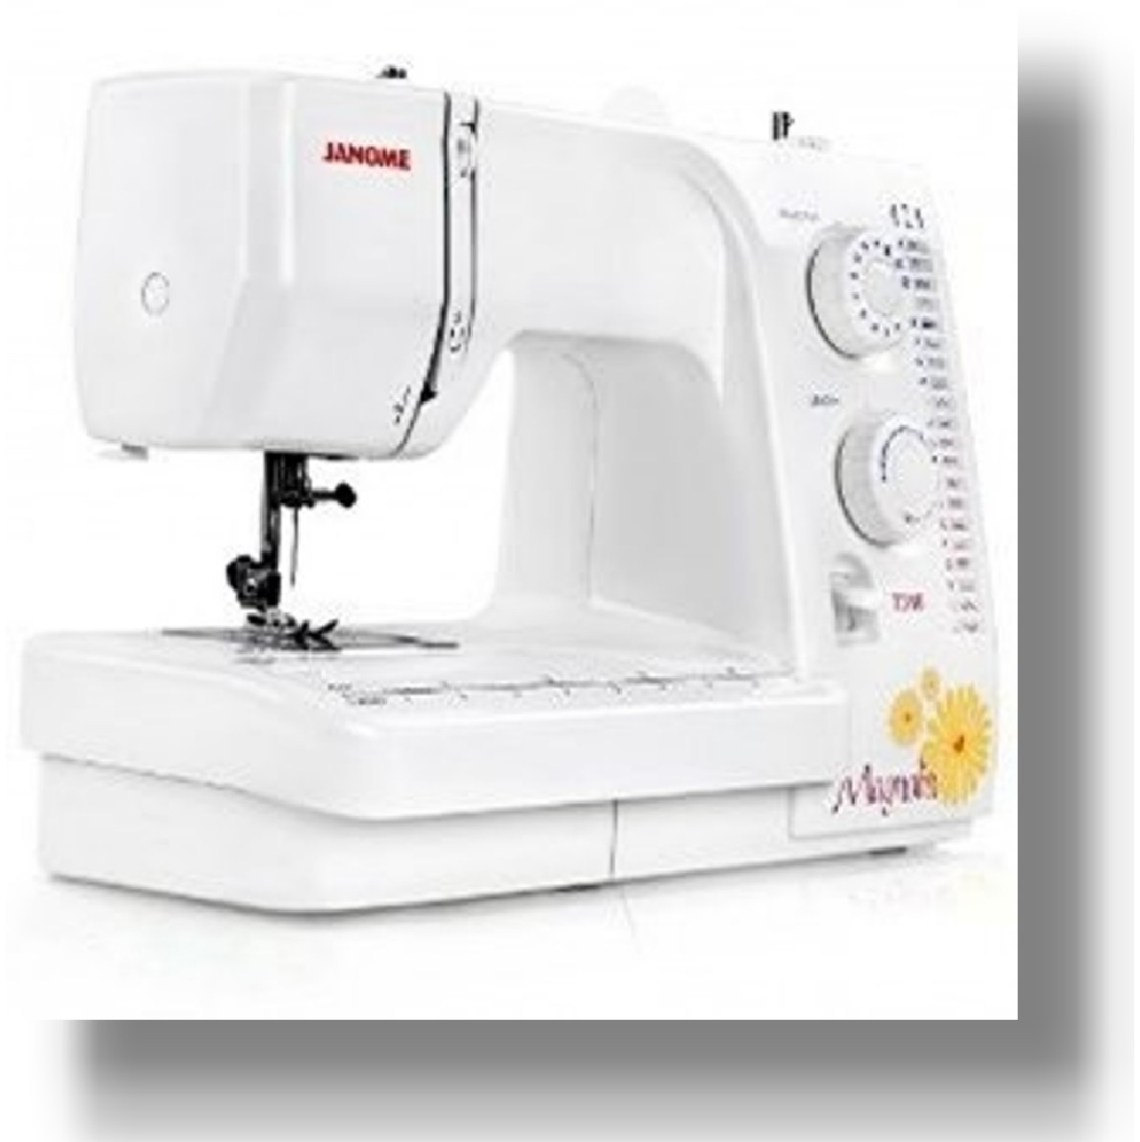 Image Result For Janome Sewing Machine Xl